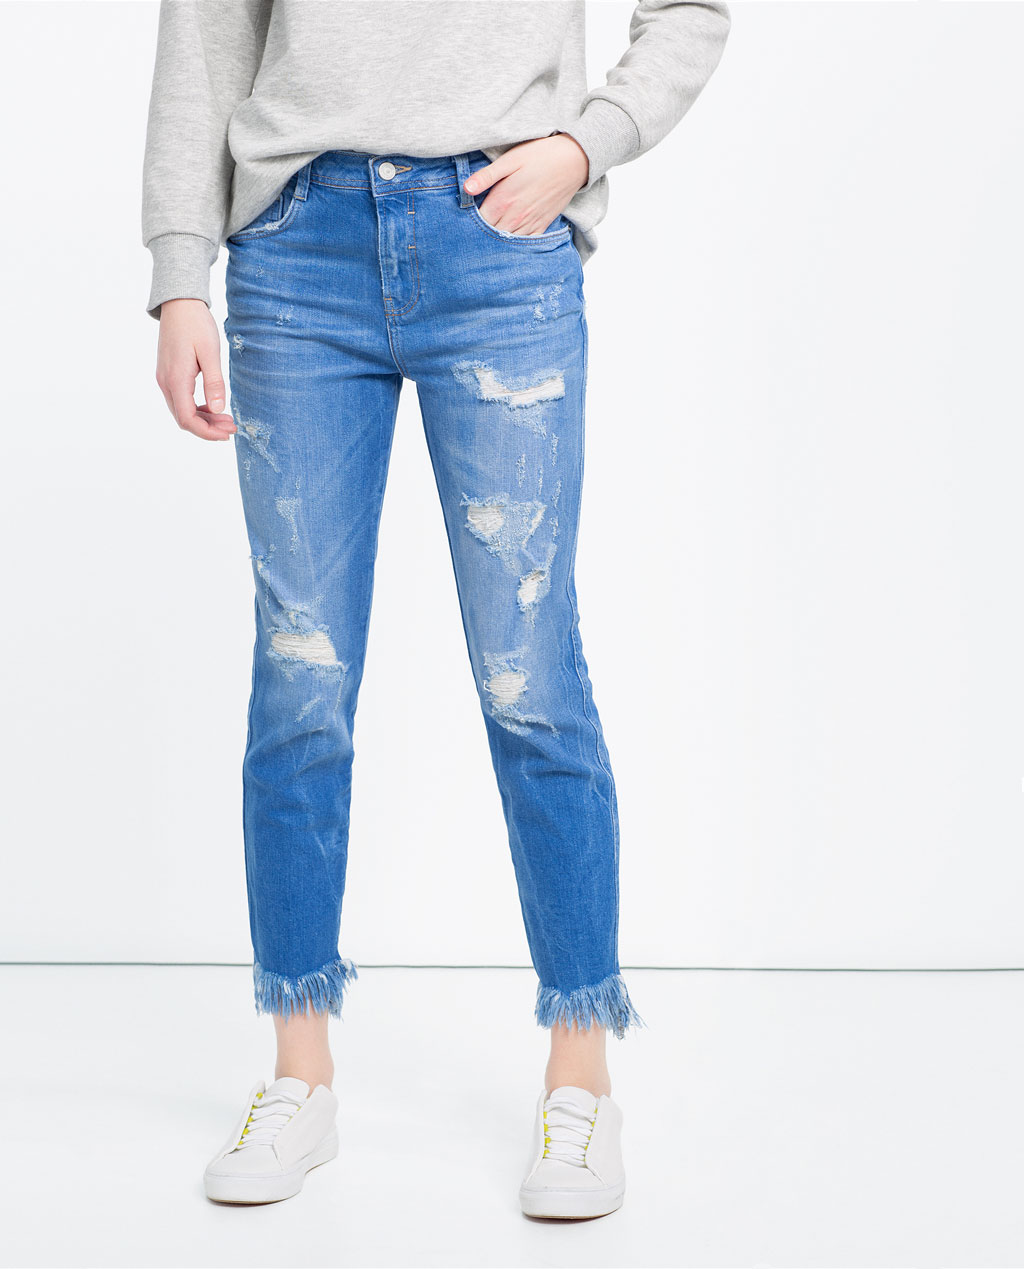 Zara Distressed Frayed Slouchy Jeans Review